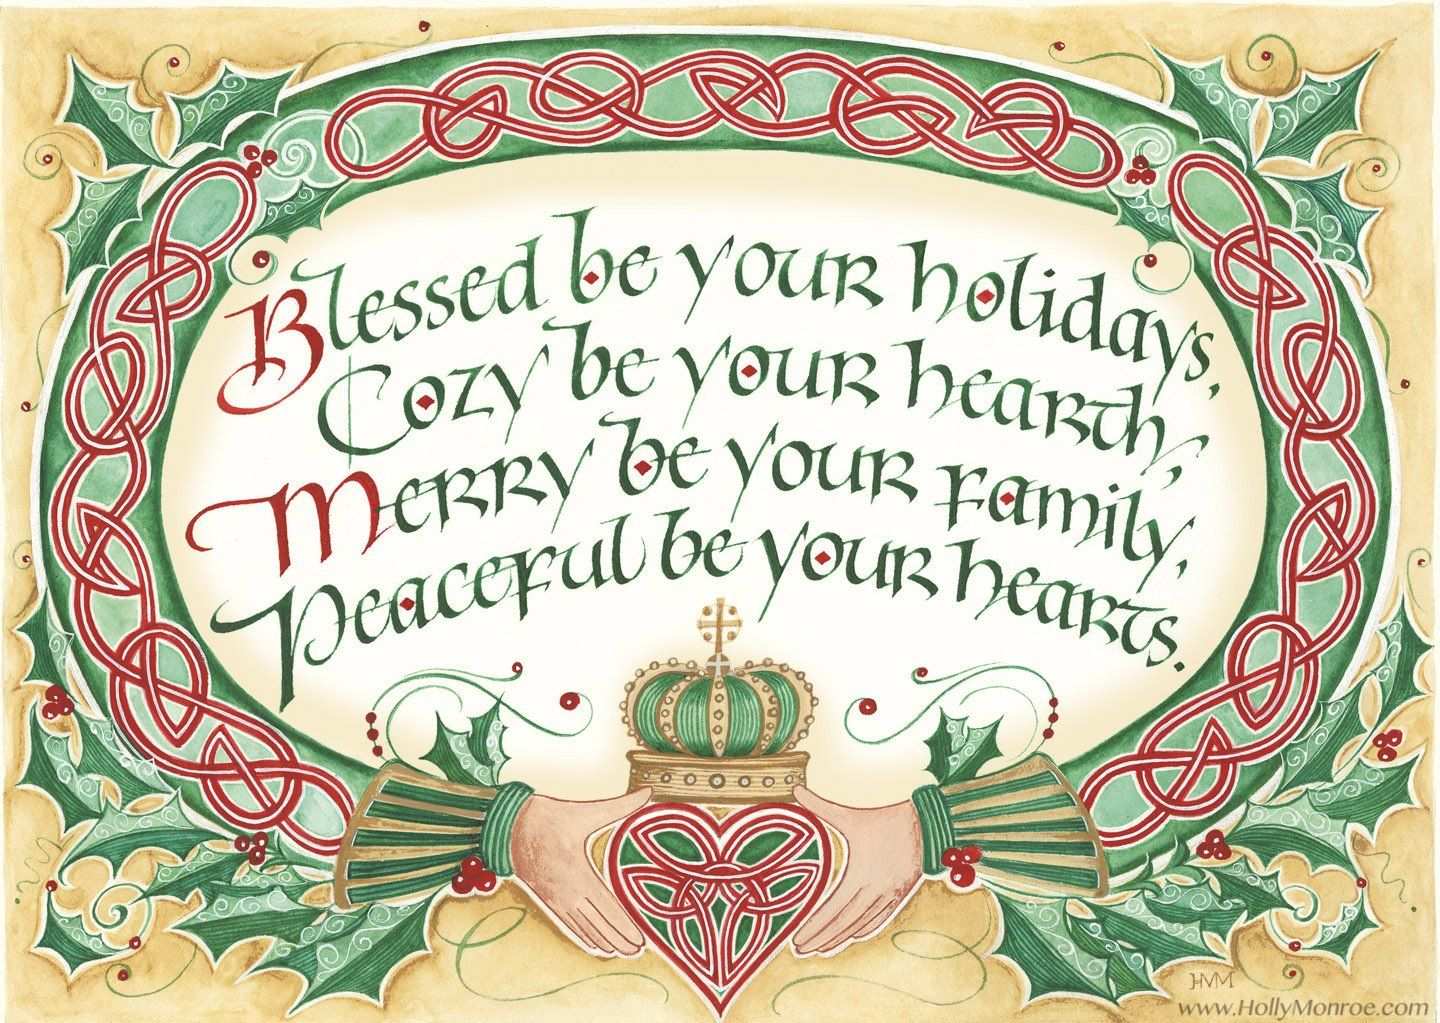 Blessed Be Your Holidays | Knots for jewelry | Pinterest | Christmas ...